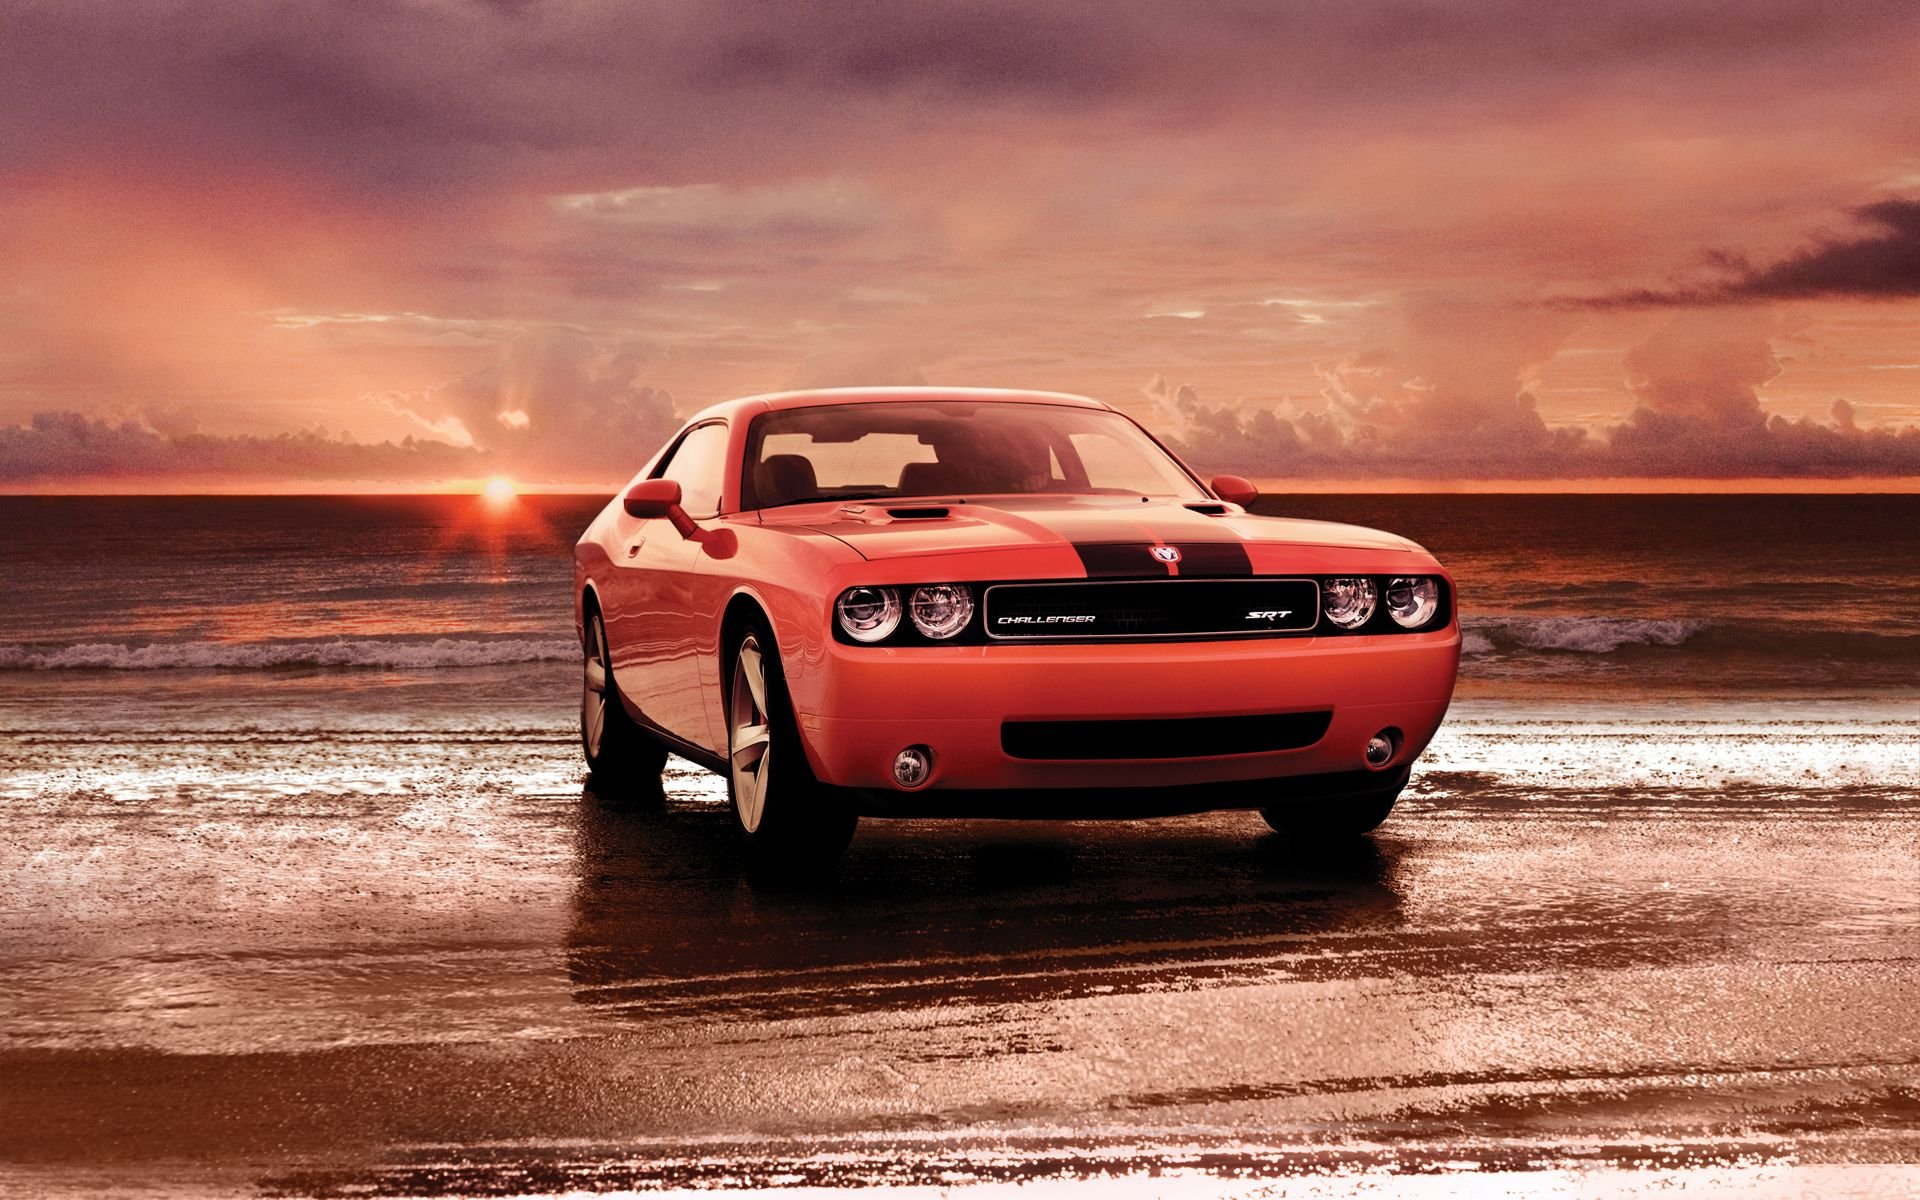 Dodge Challenger SRT8 Wallpaper HD 1920x1200